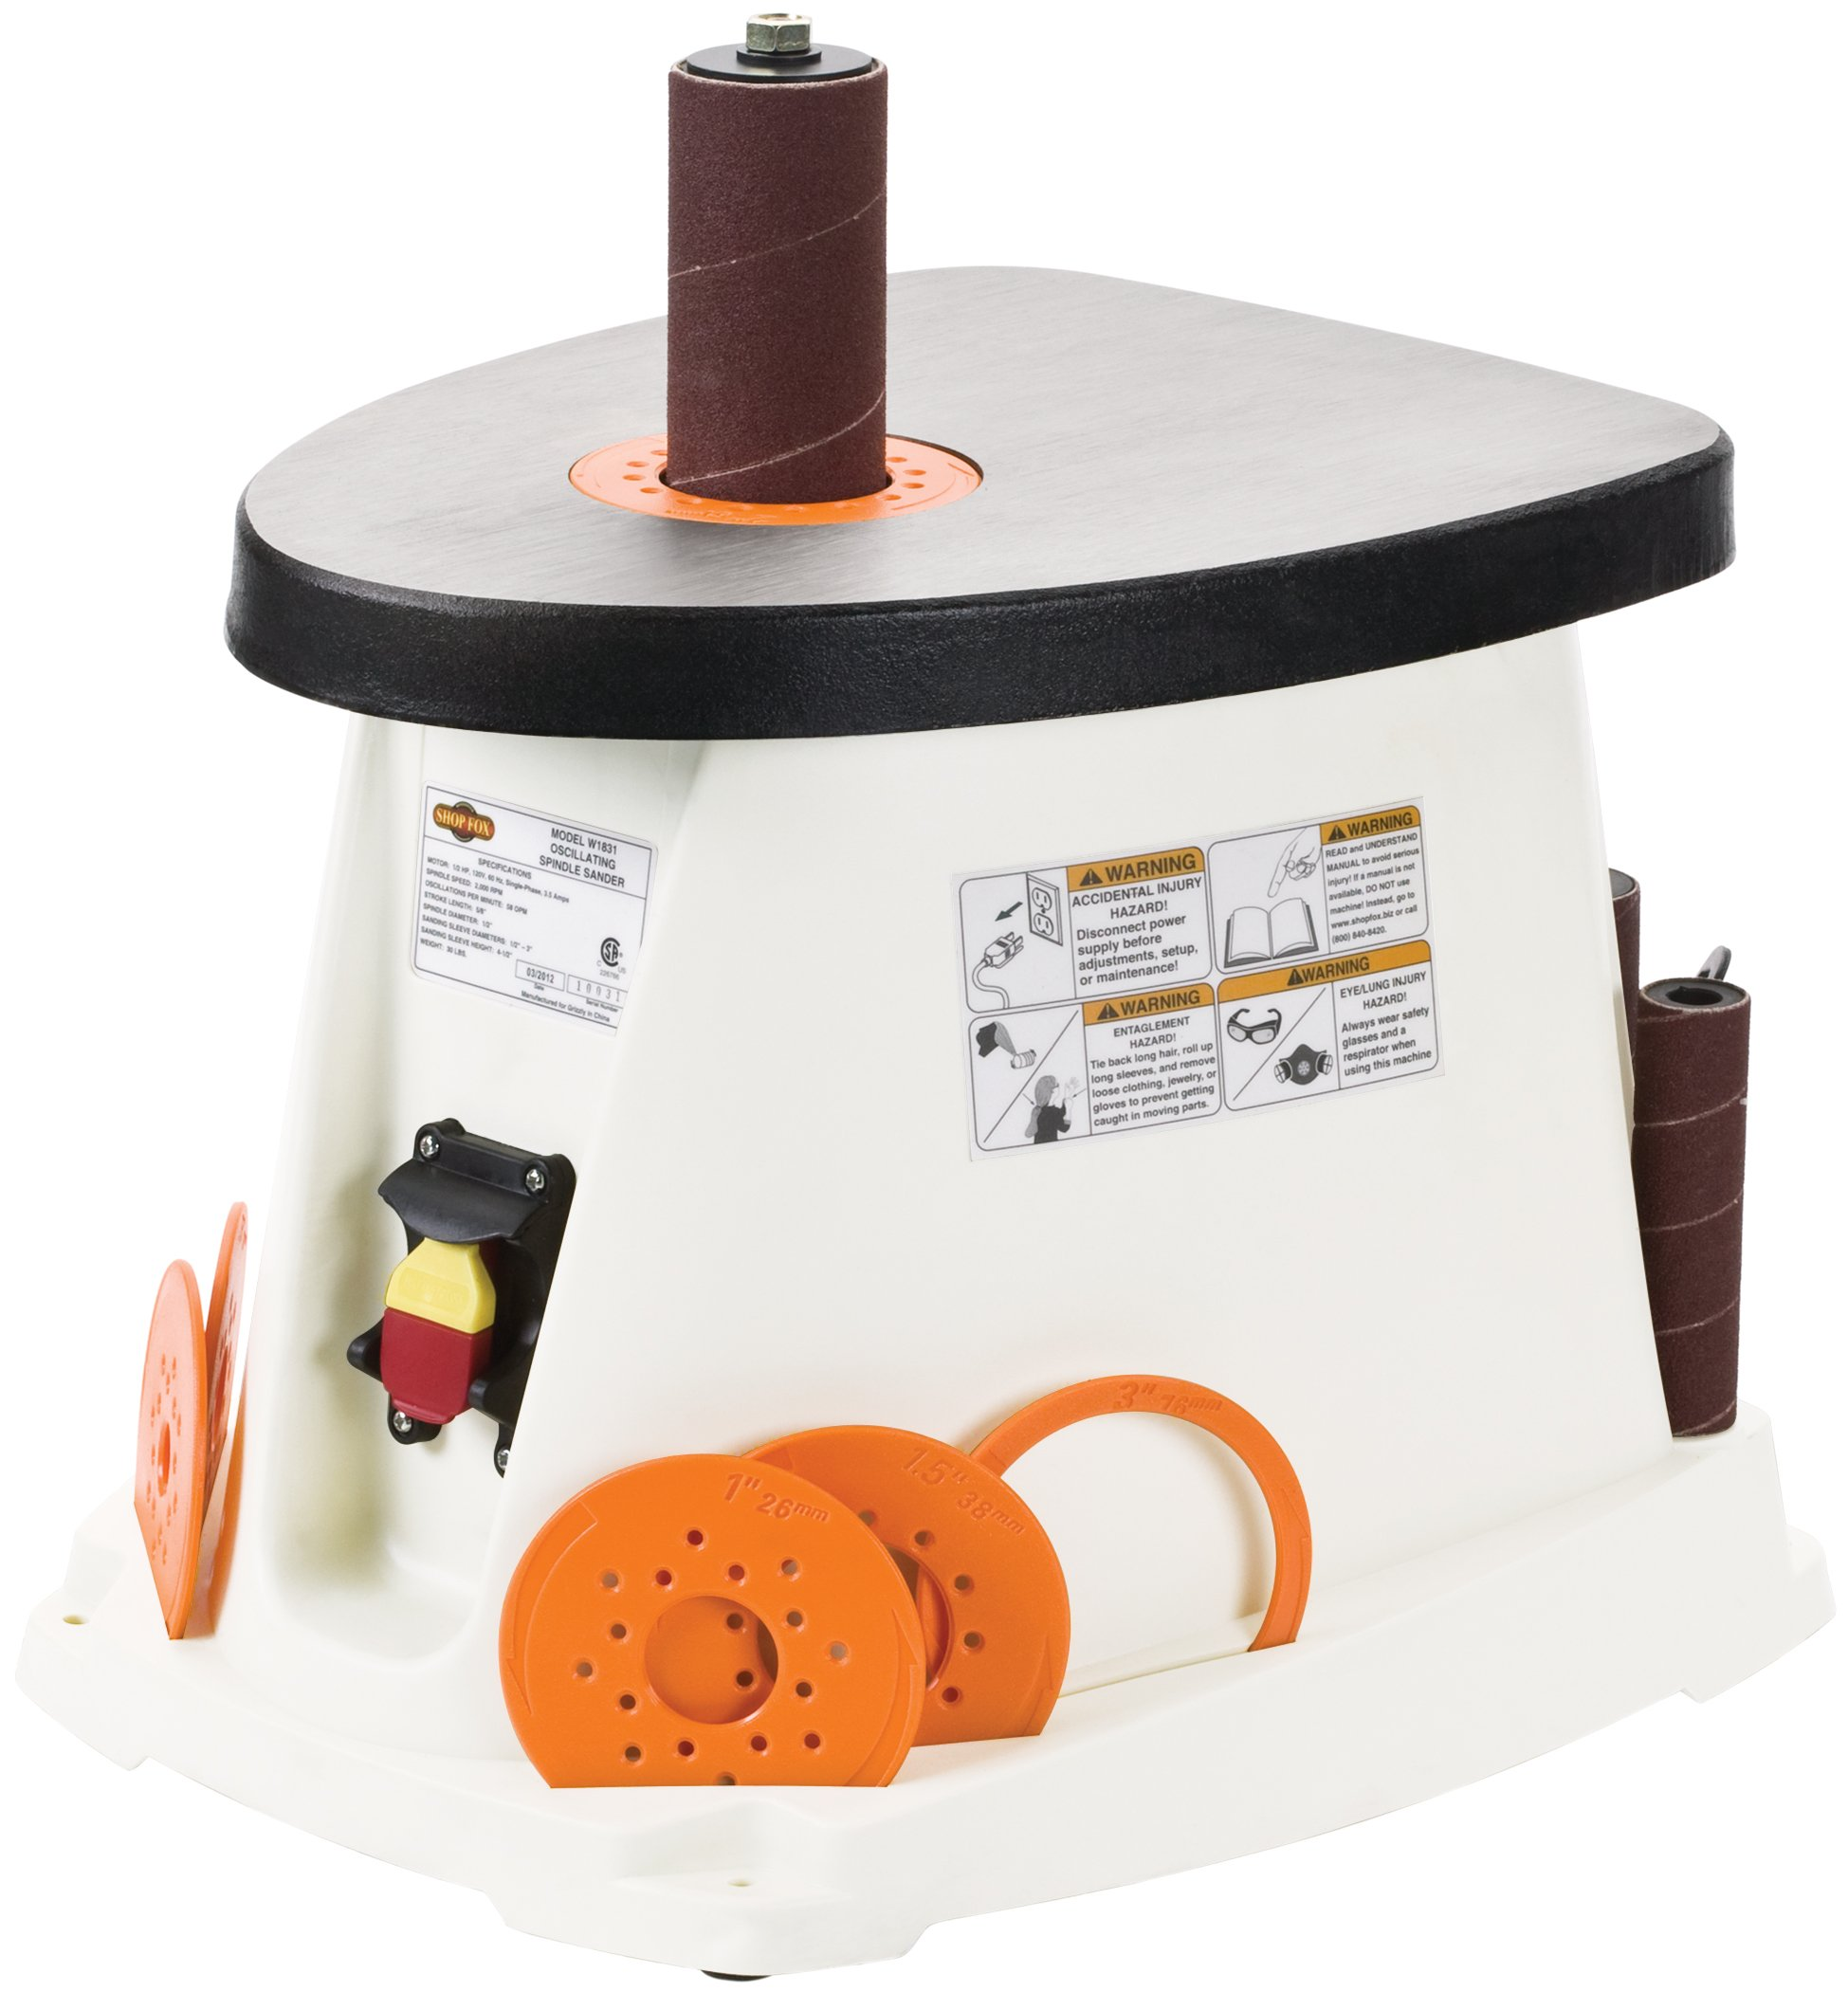 Shop Fox W1831 1/2 HP Single Phase Oscillating Spindle Sander